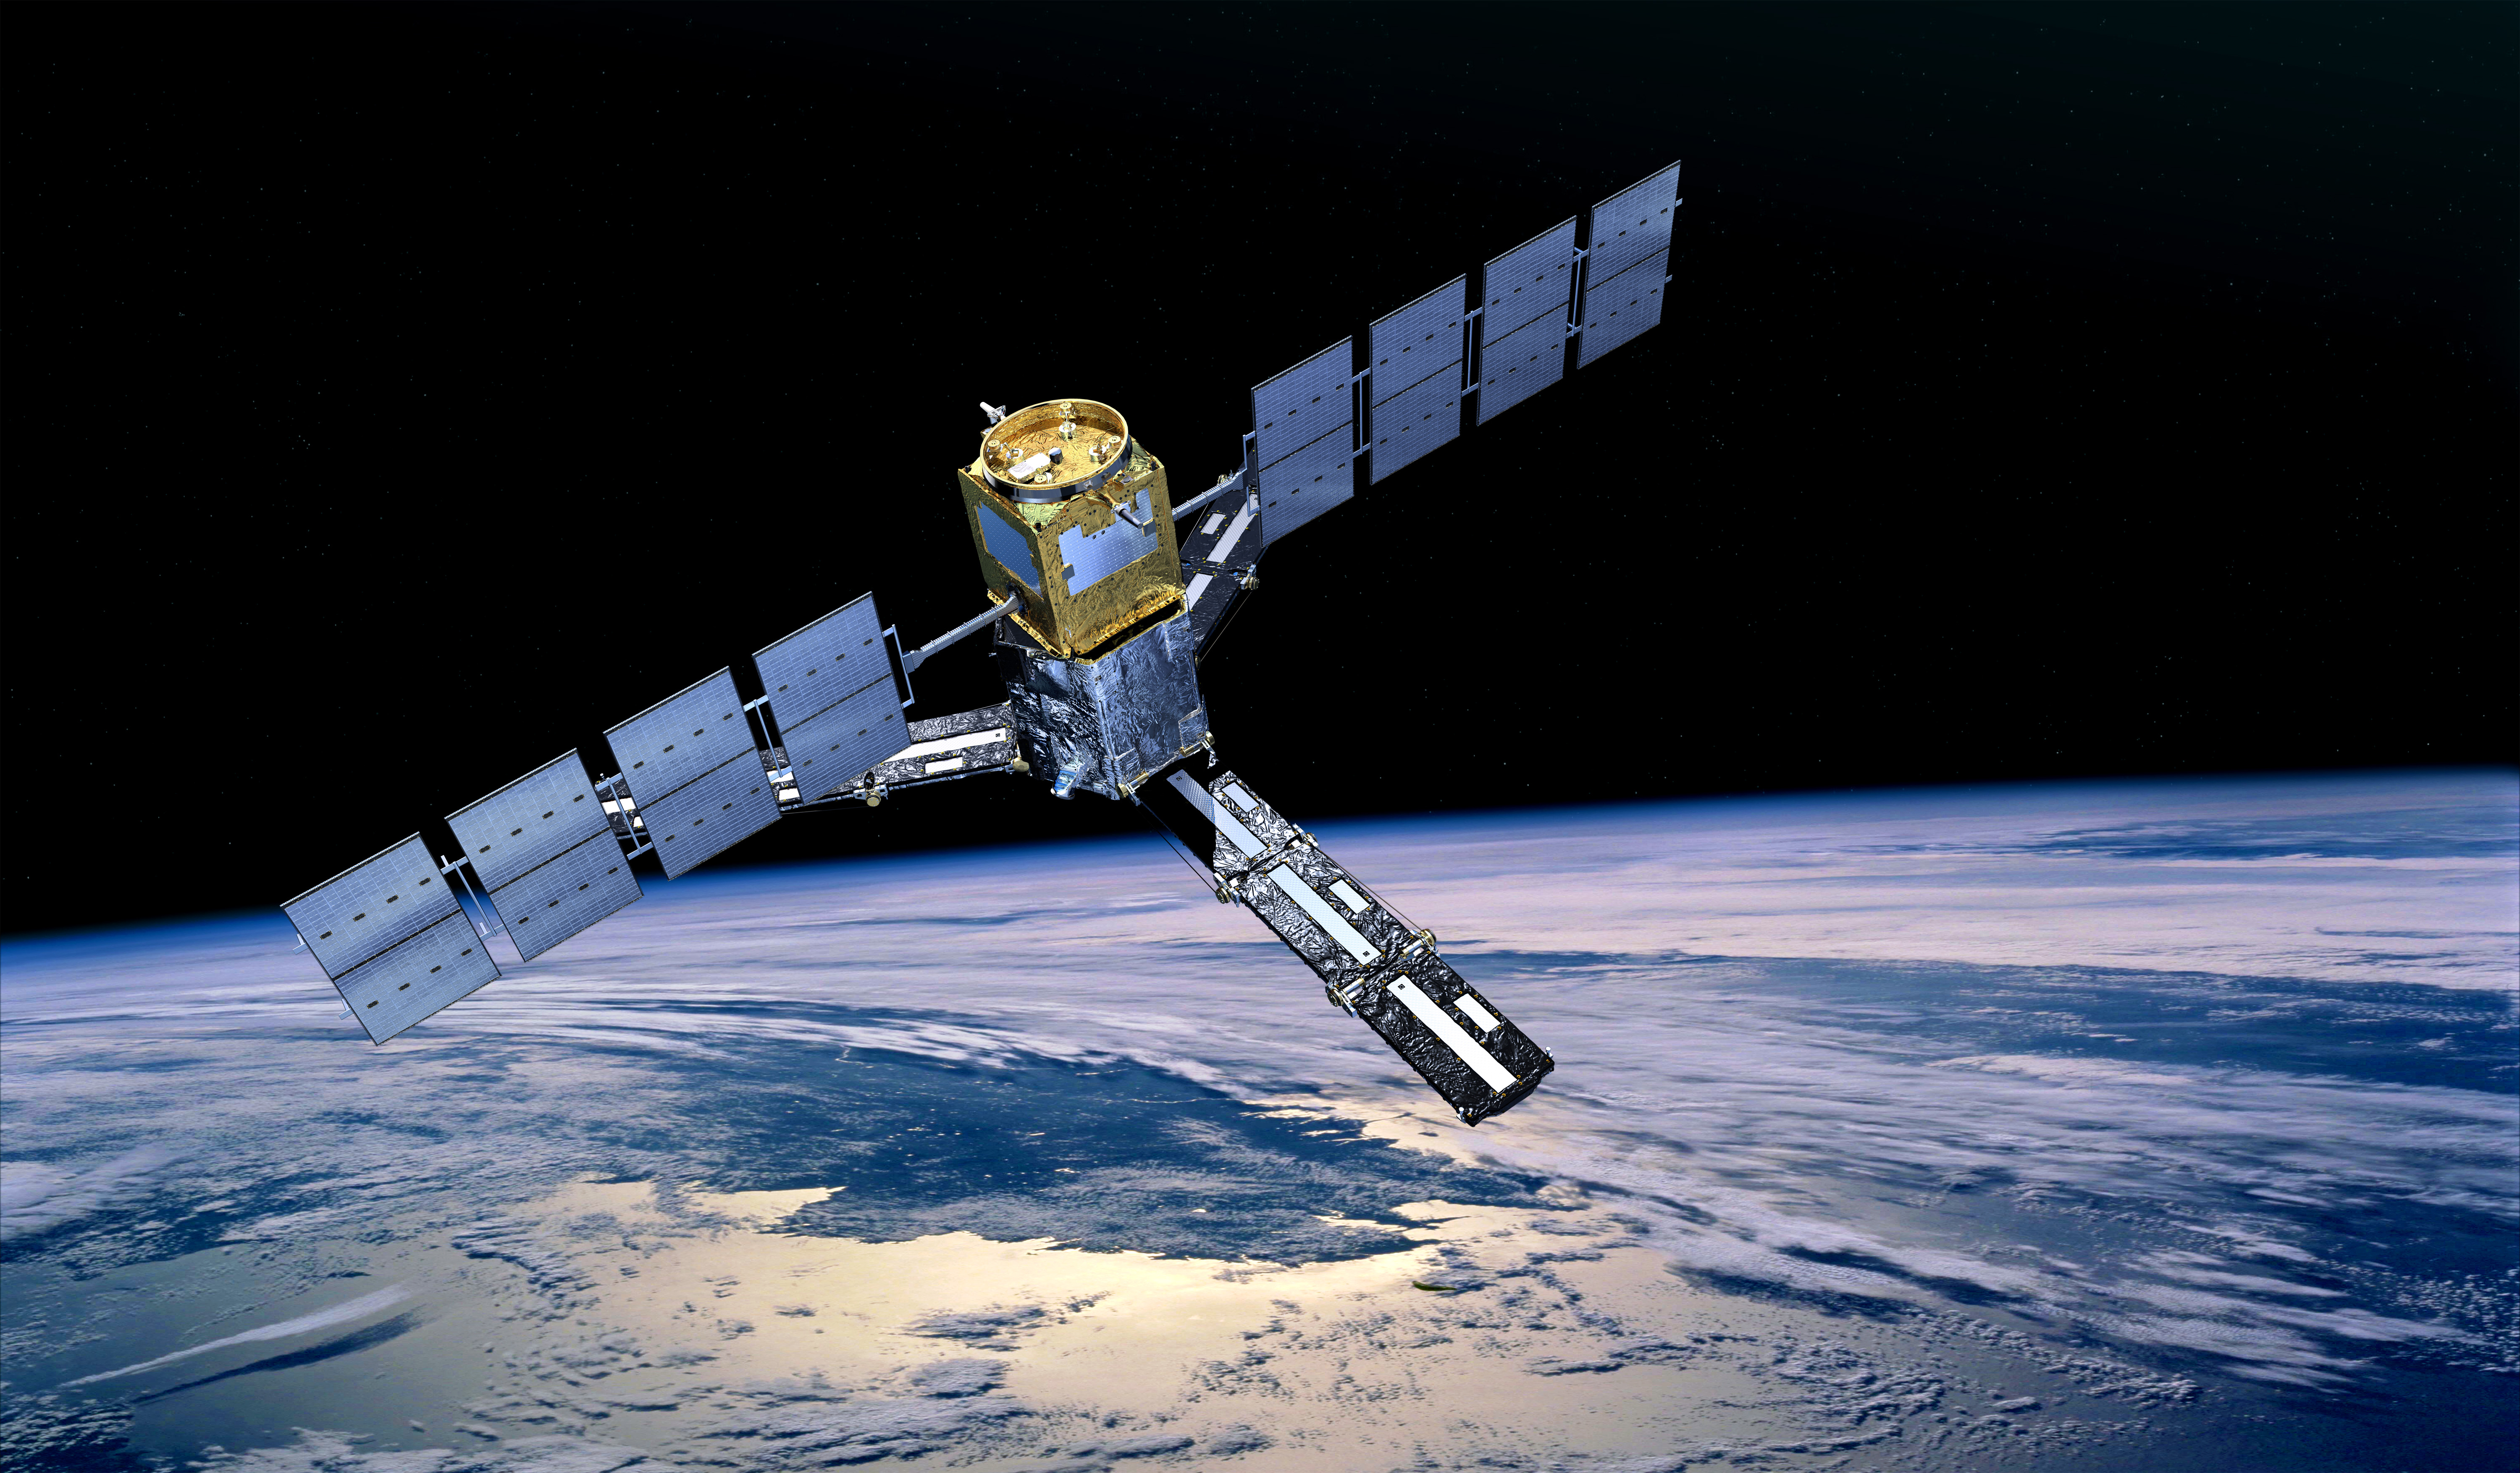 Artificial satellites a marvel of technology